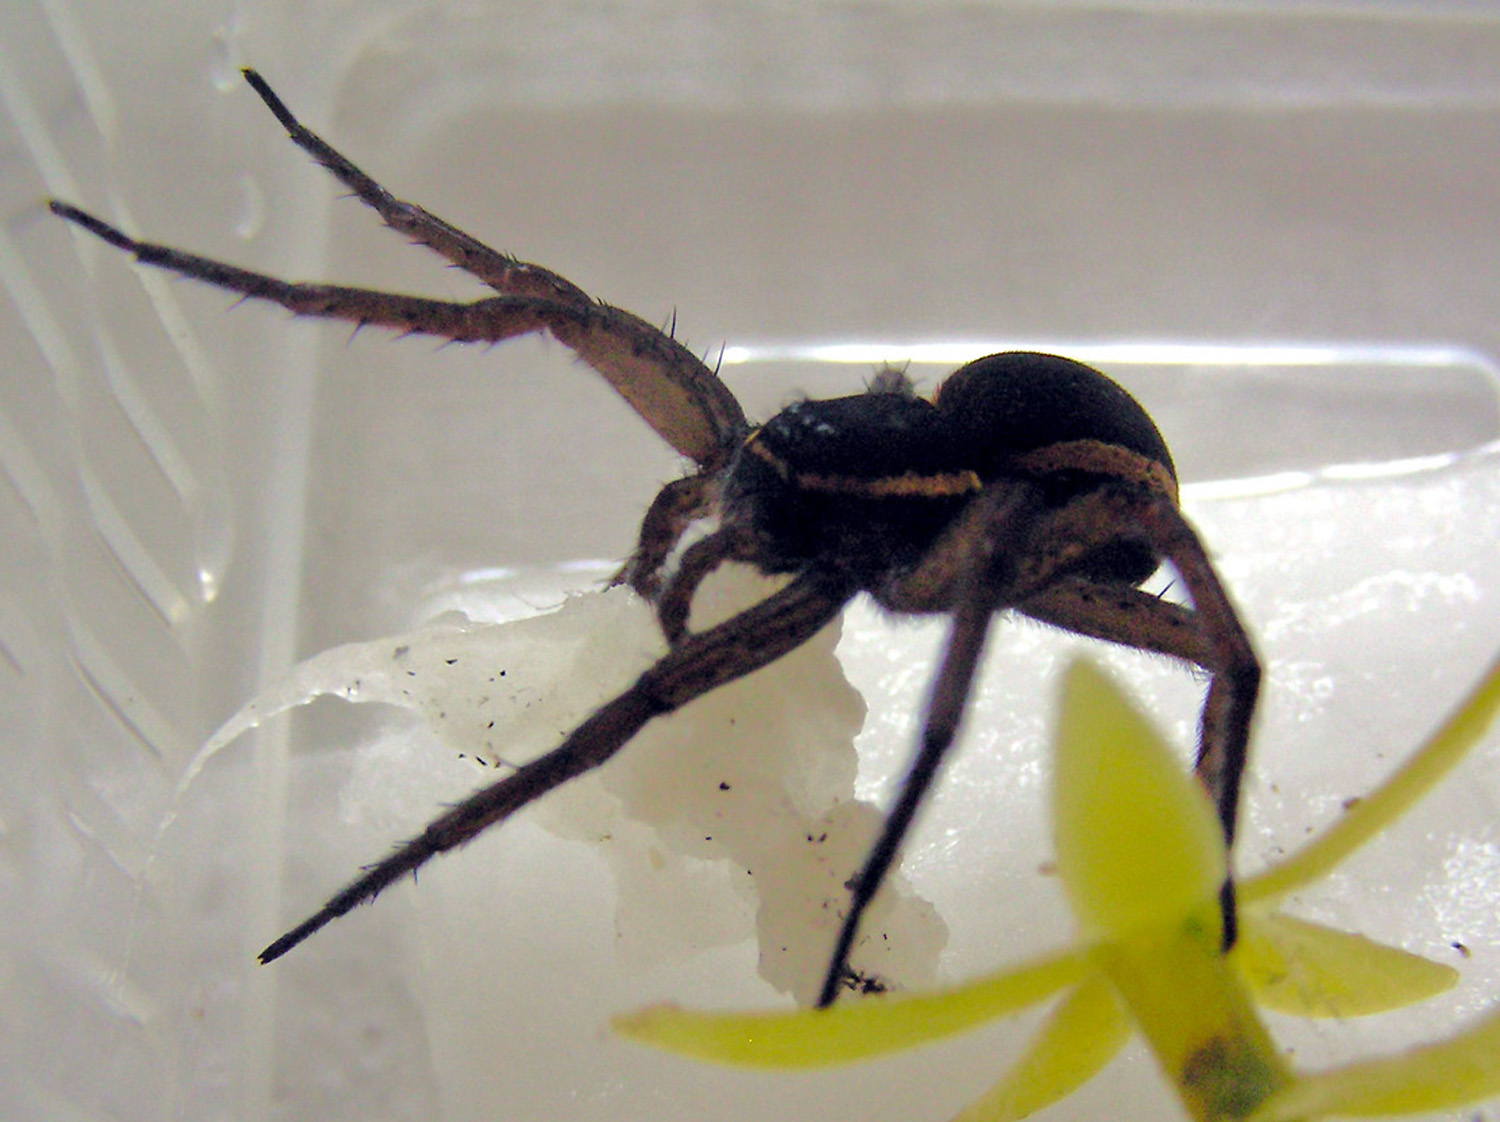 Female D. plantarius carrying cotton wool in lieu of an egg sac in captivity